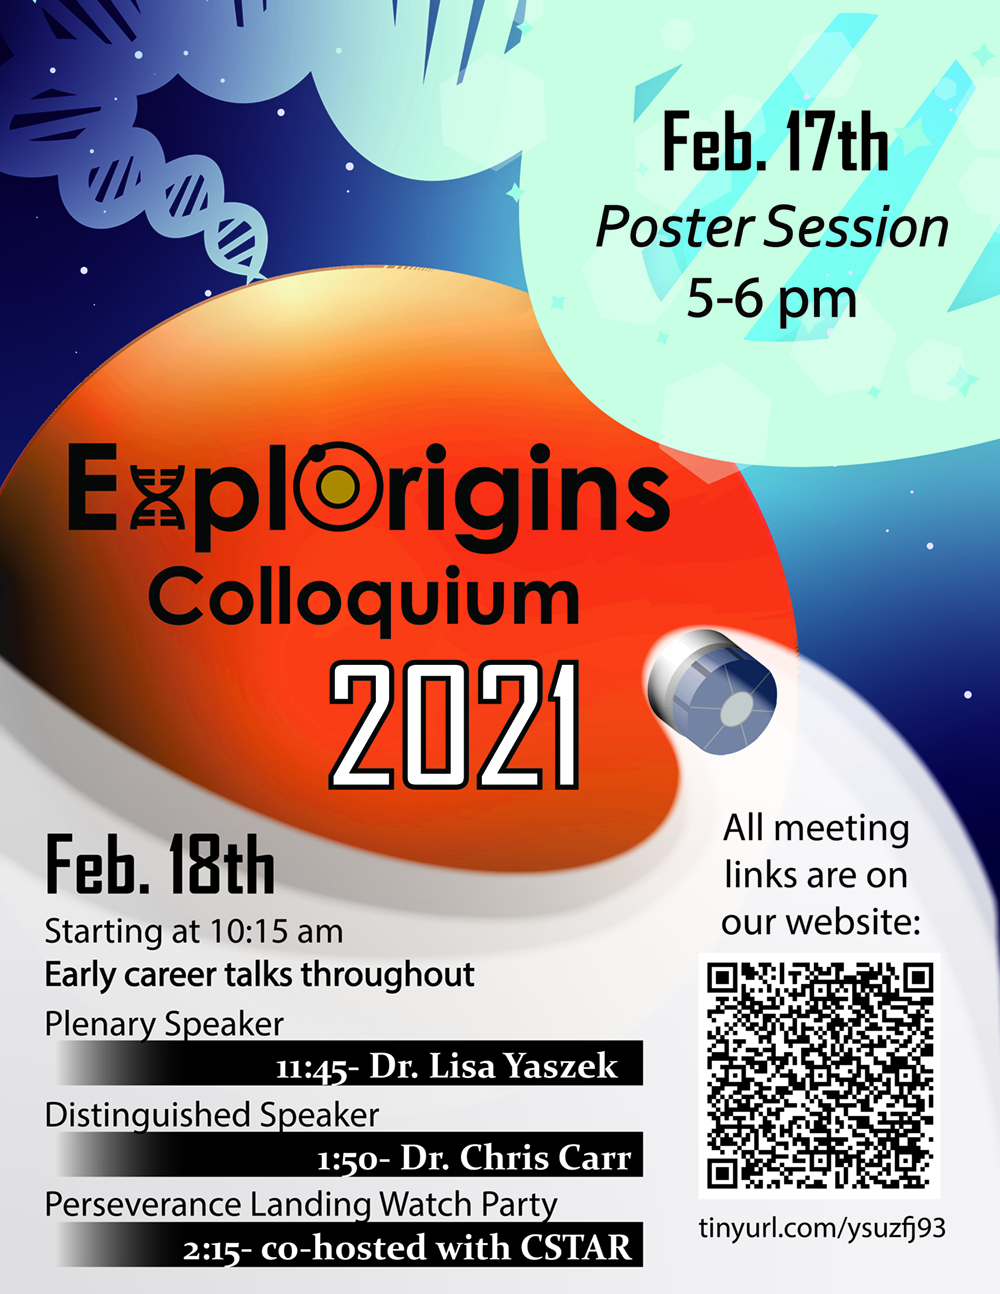 ExplOrigins Colloquium 2021 - Space Science Week at Tech